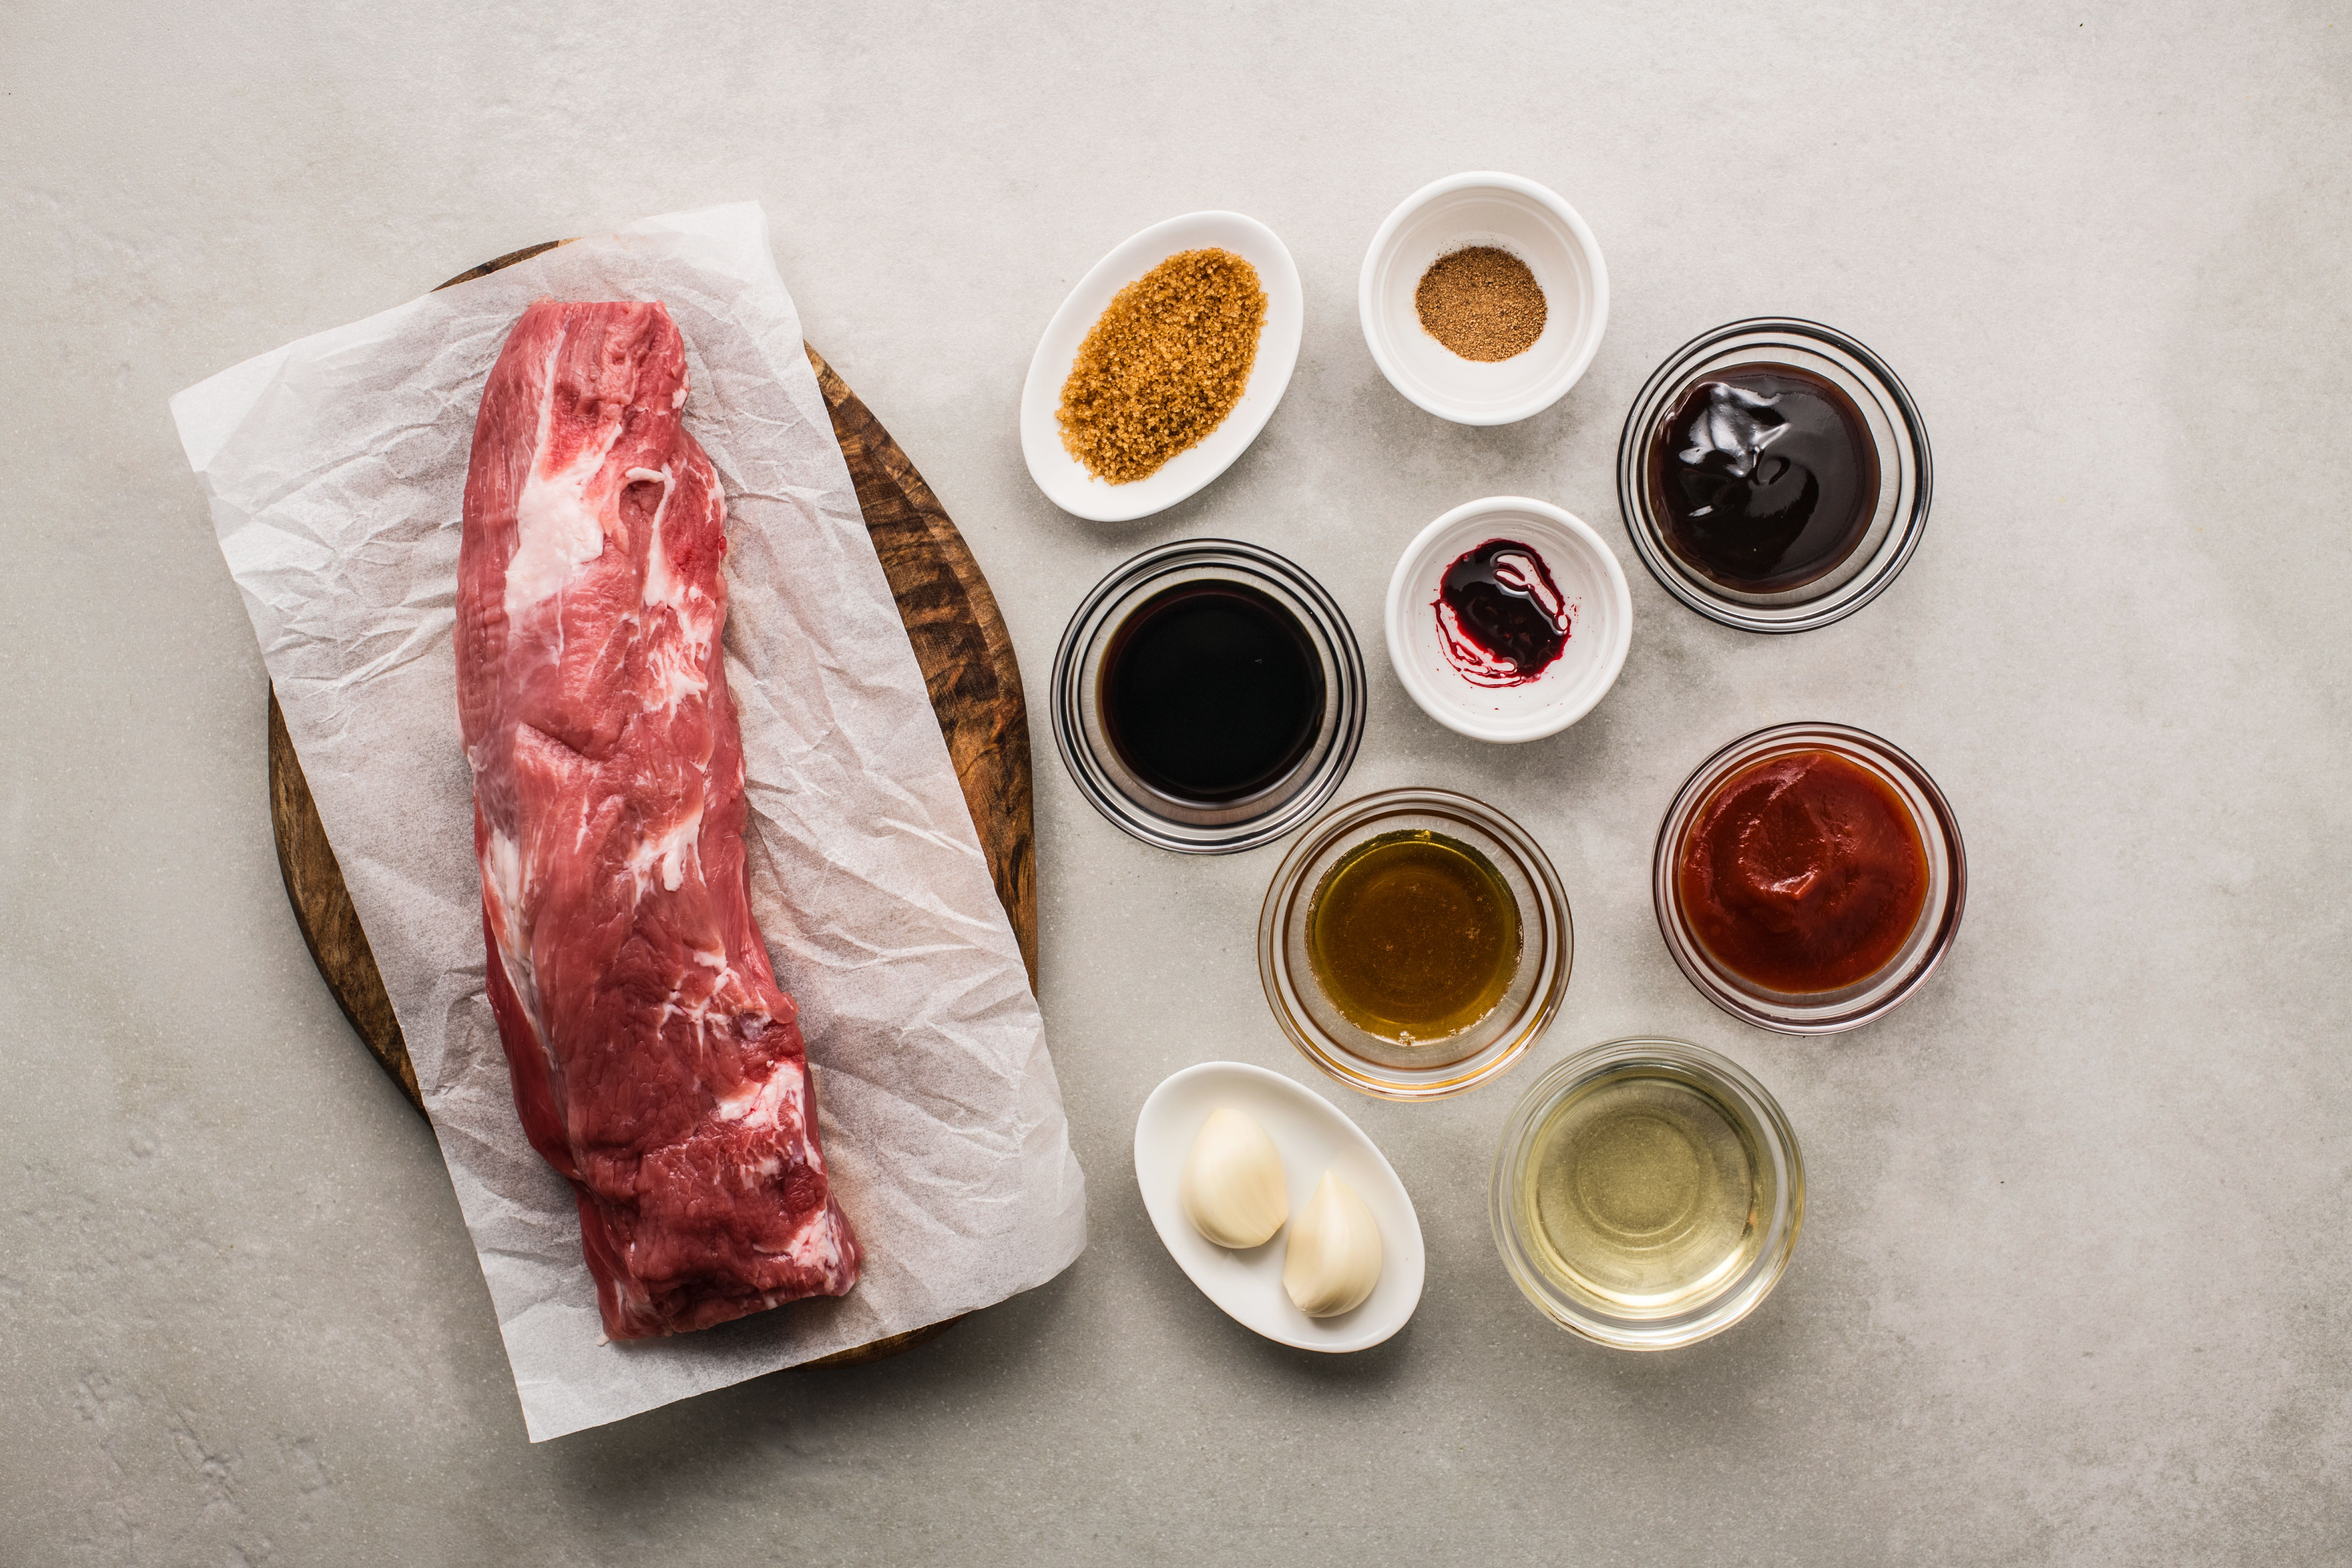 Ingredients for barbecue pork recipe